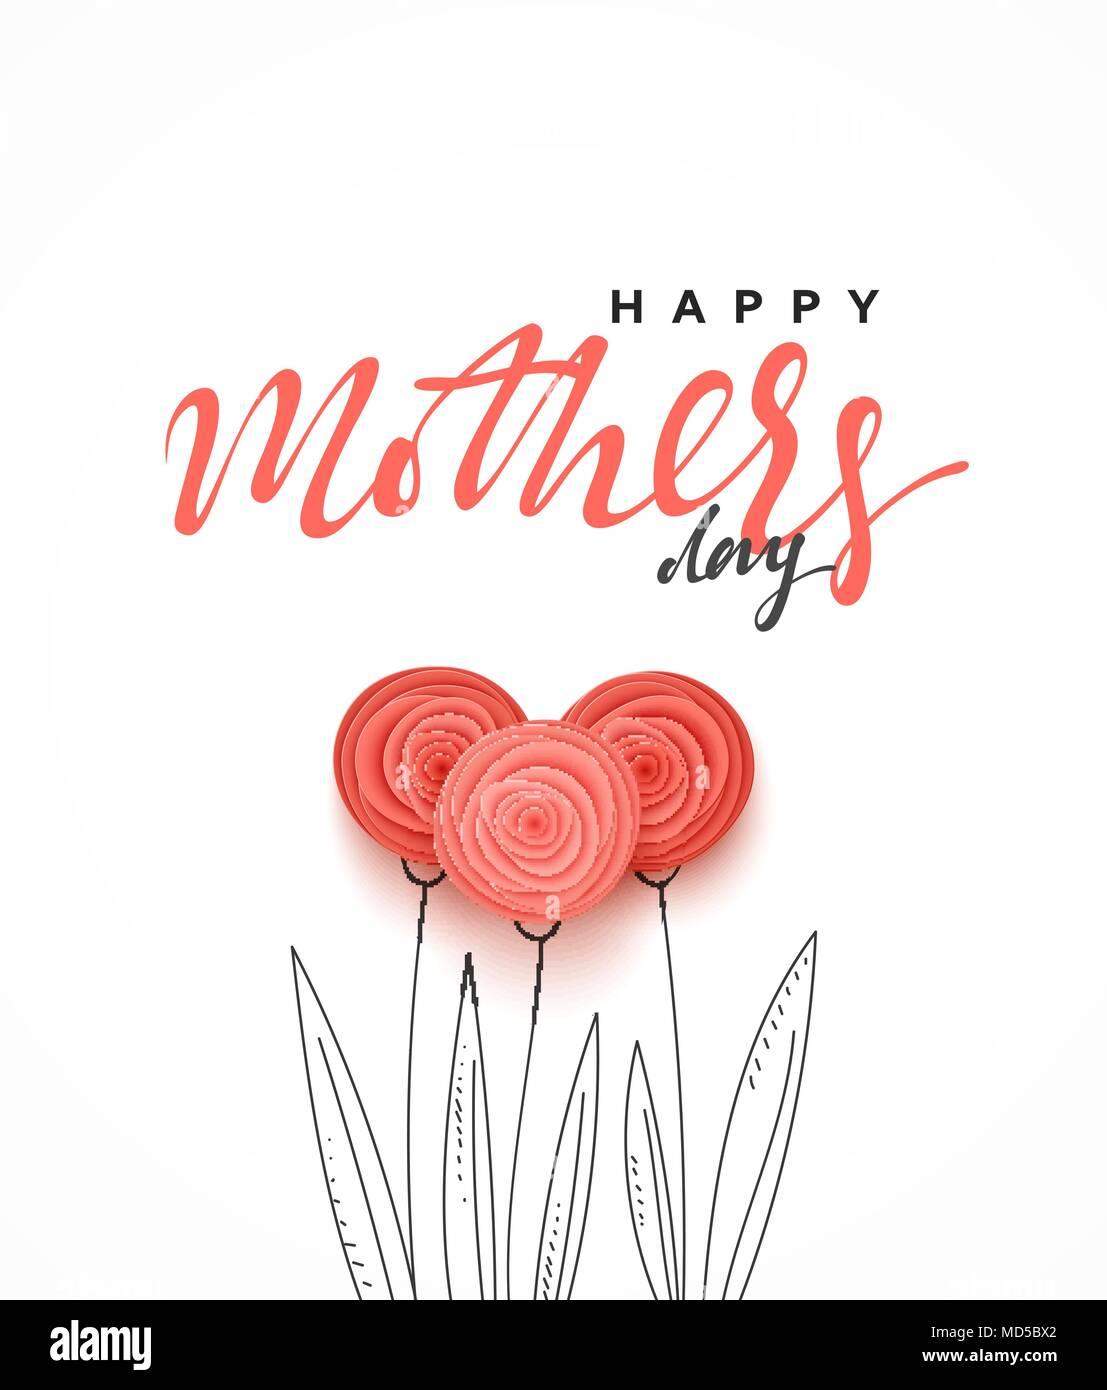 Happy Mothers Day Greeting Card With Beautiful Flowers In The